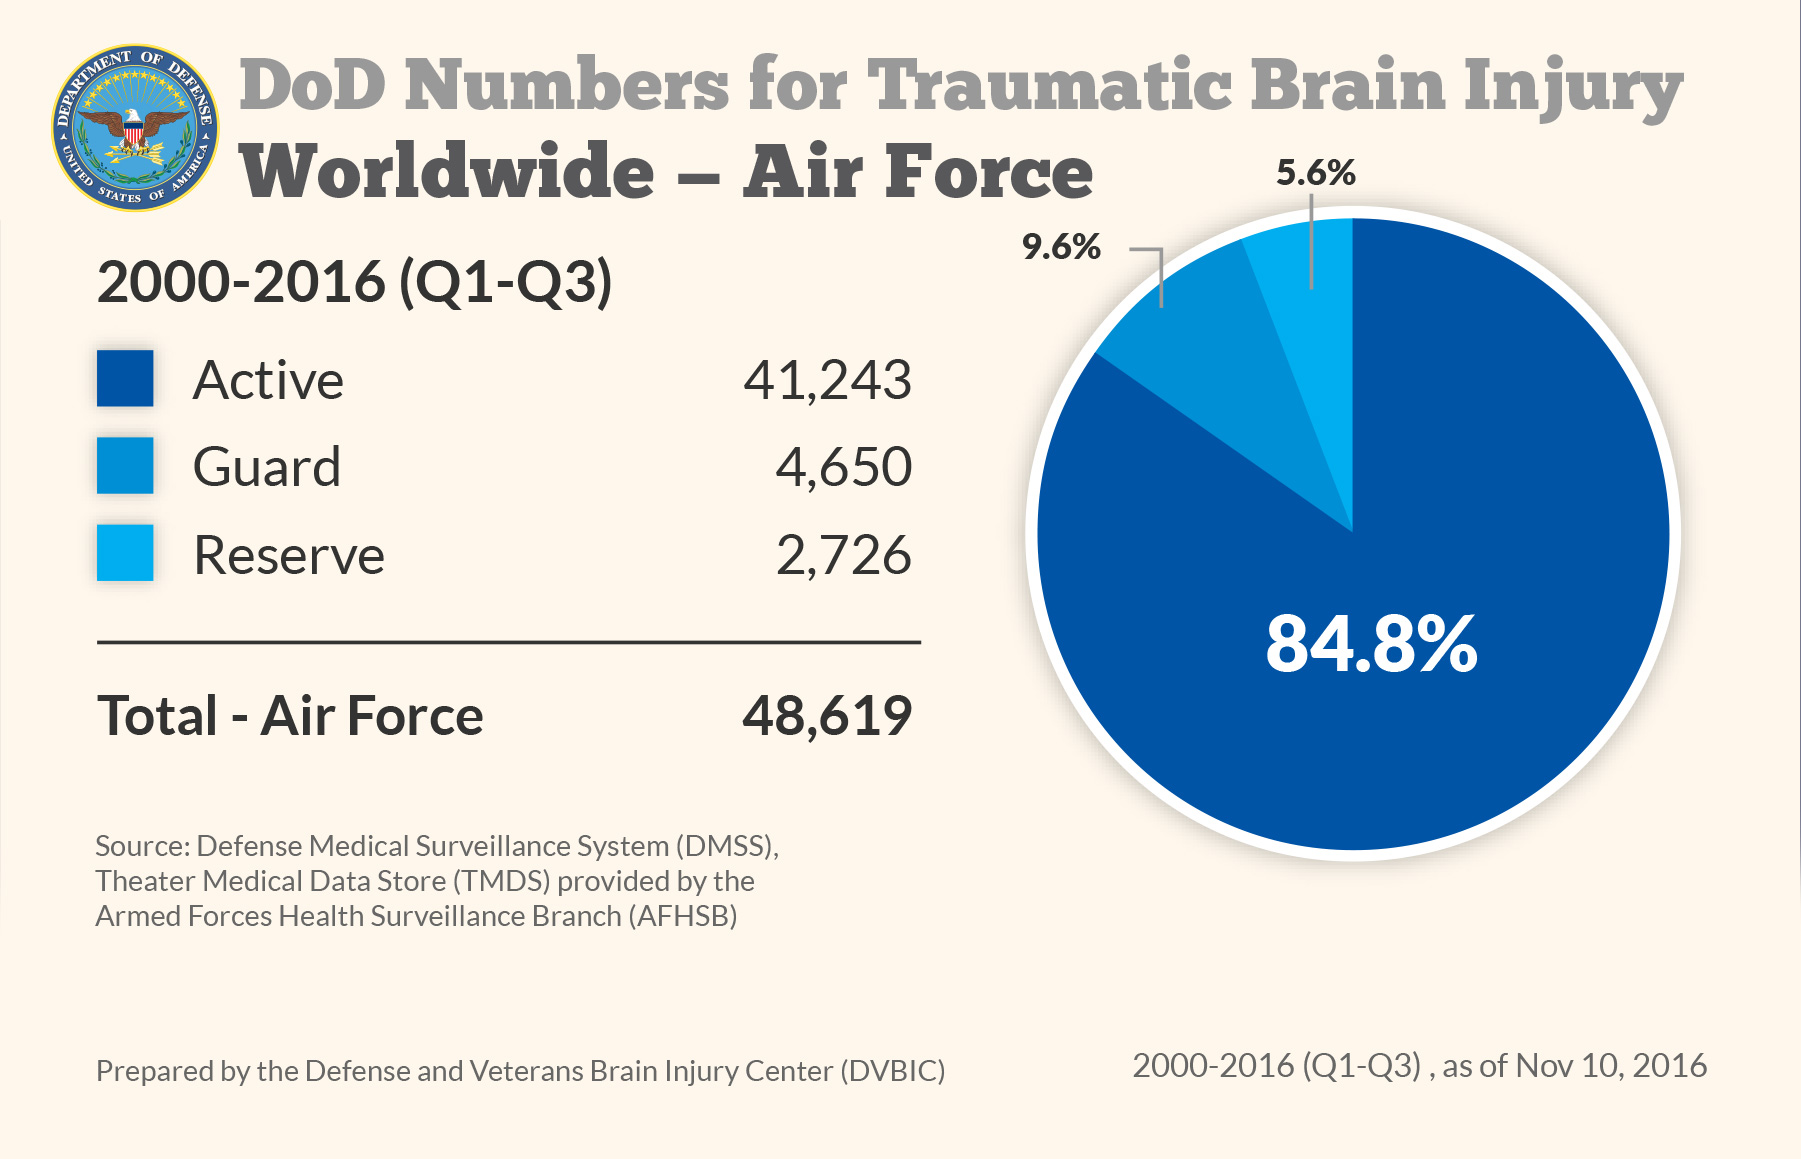 DoD Numbers for Traumatic Brain Injury Worldwide - Air Force